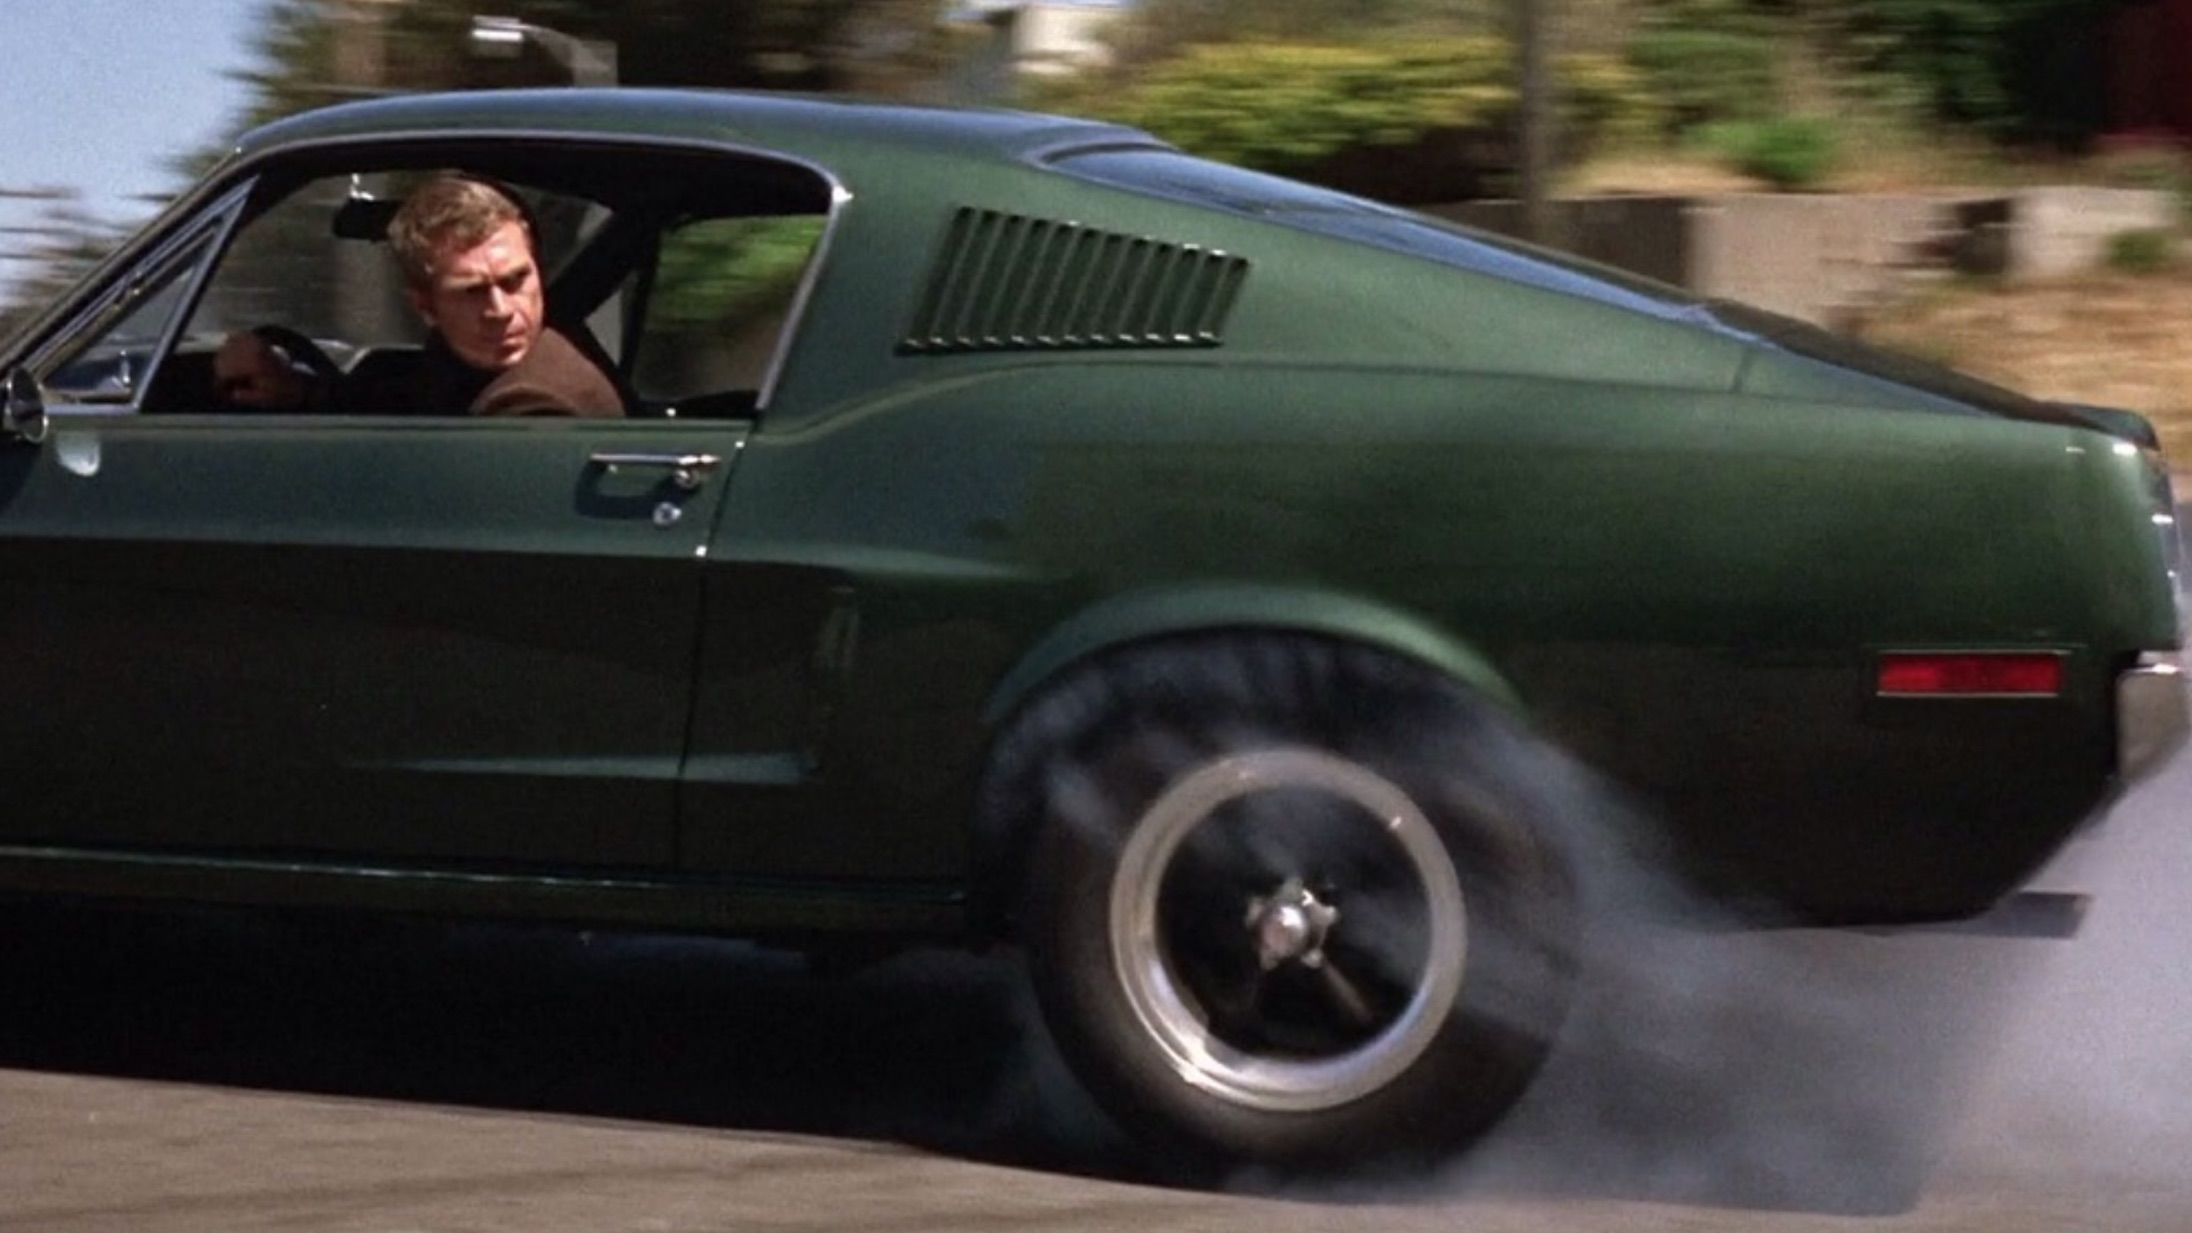 The 15 Greatest Movie Car Chases